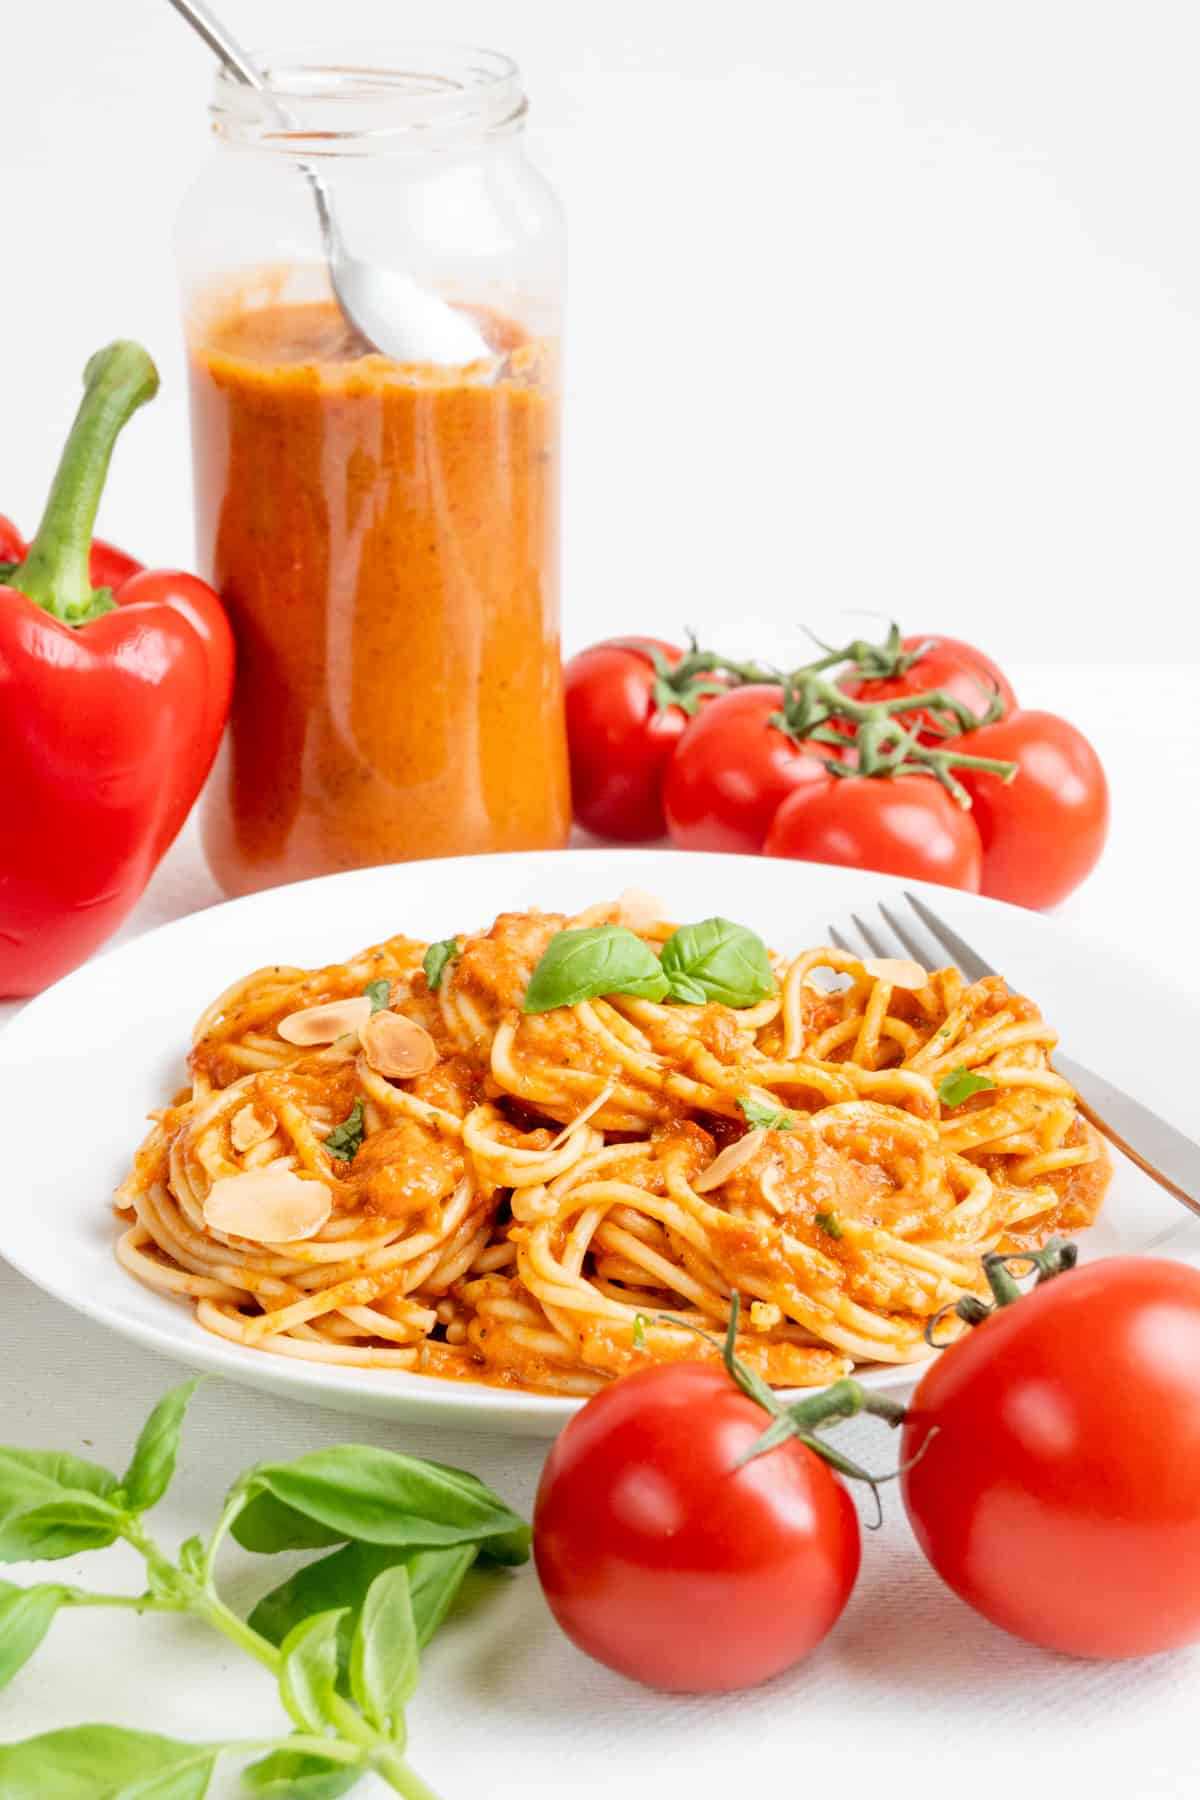 In the foreground fresh red vegetables next to a plate of red pepper and tomato pasta. In the background, a tall jar of dark orange sauce.